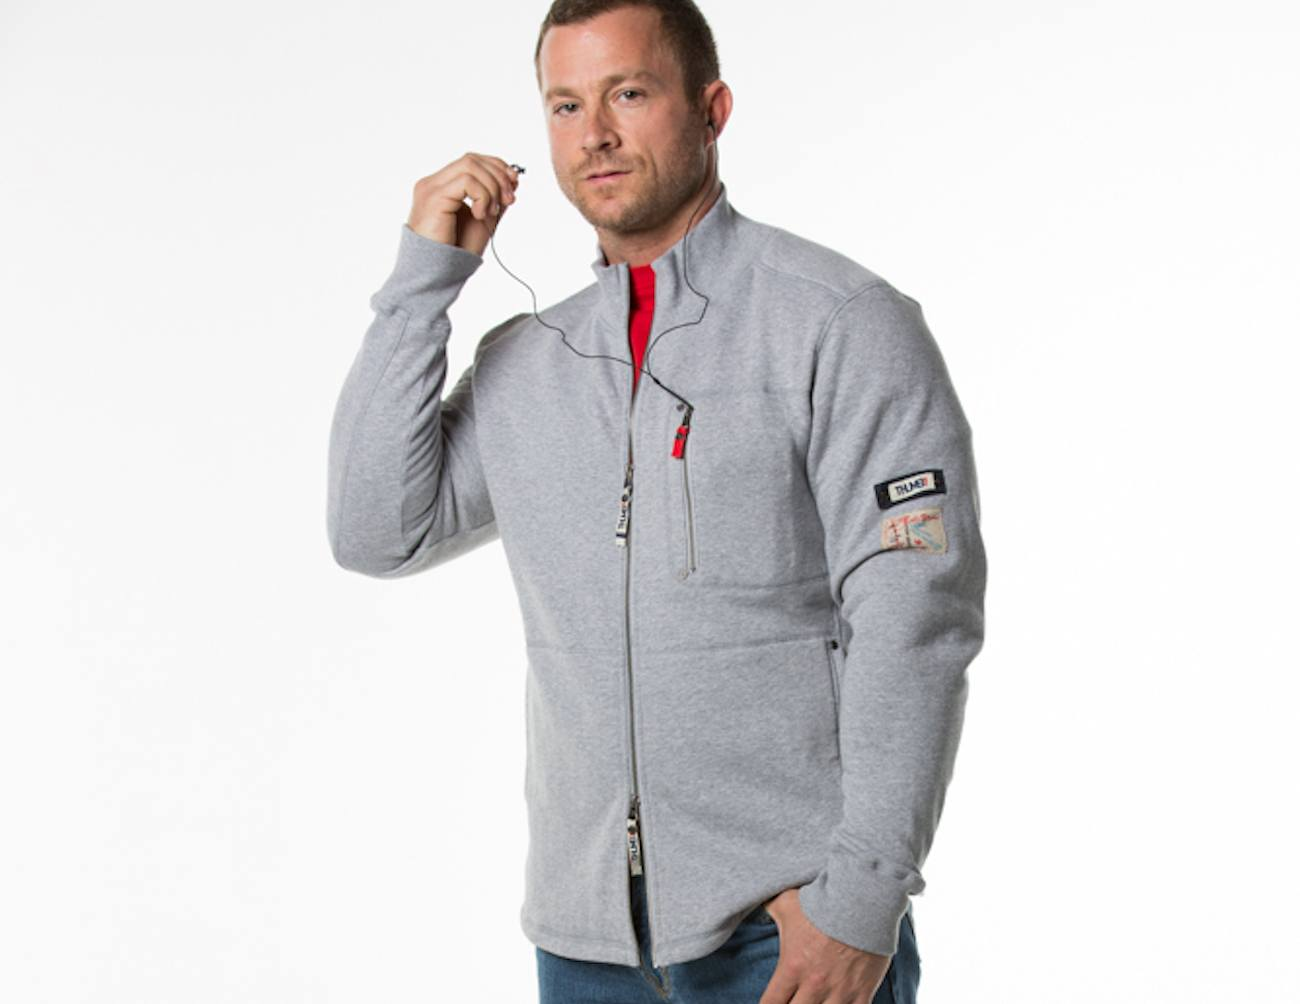 Inside Pocket Innovative Sweatshirt